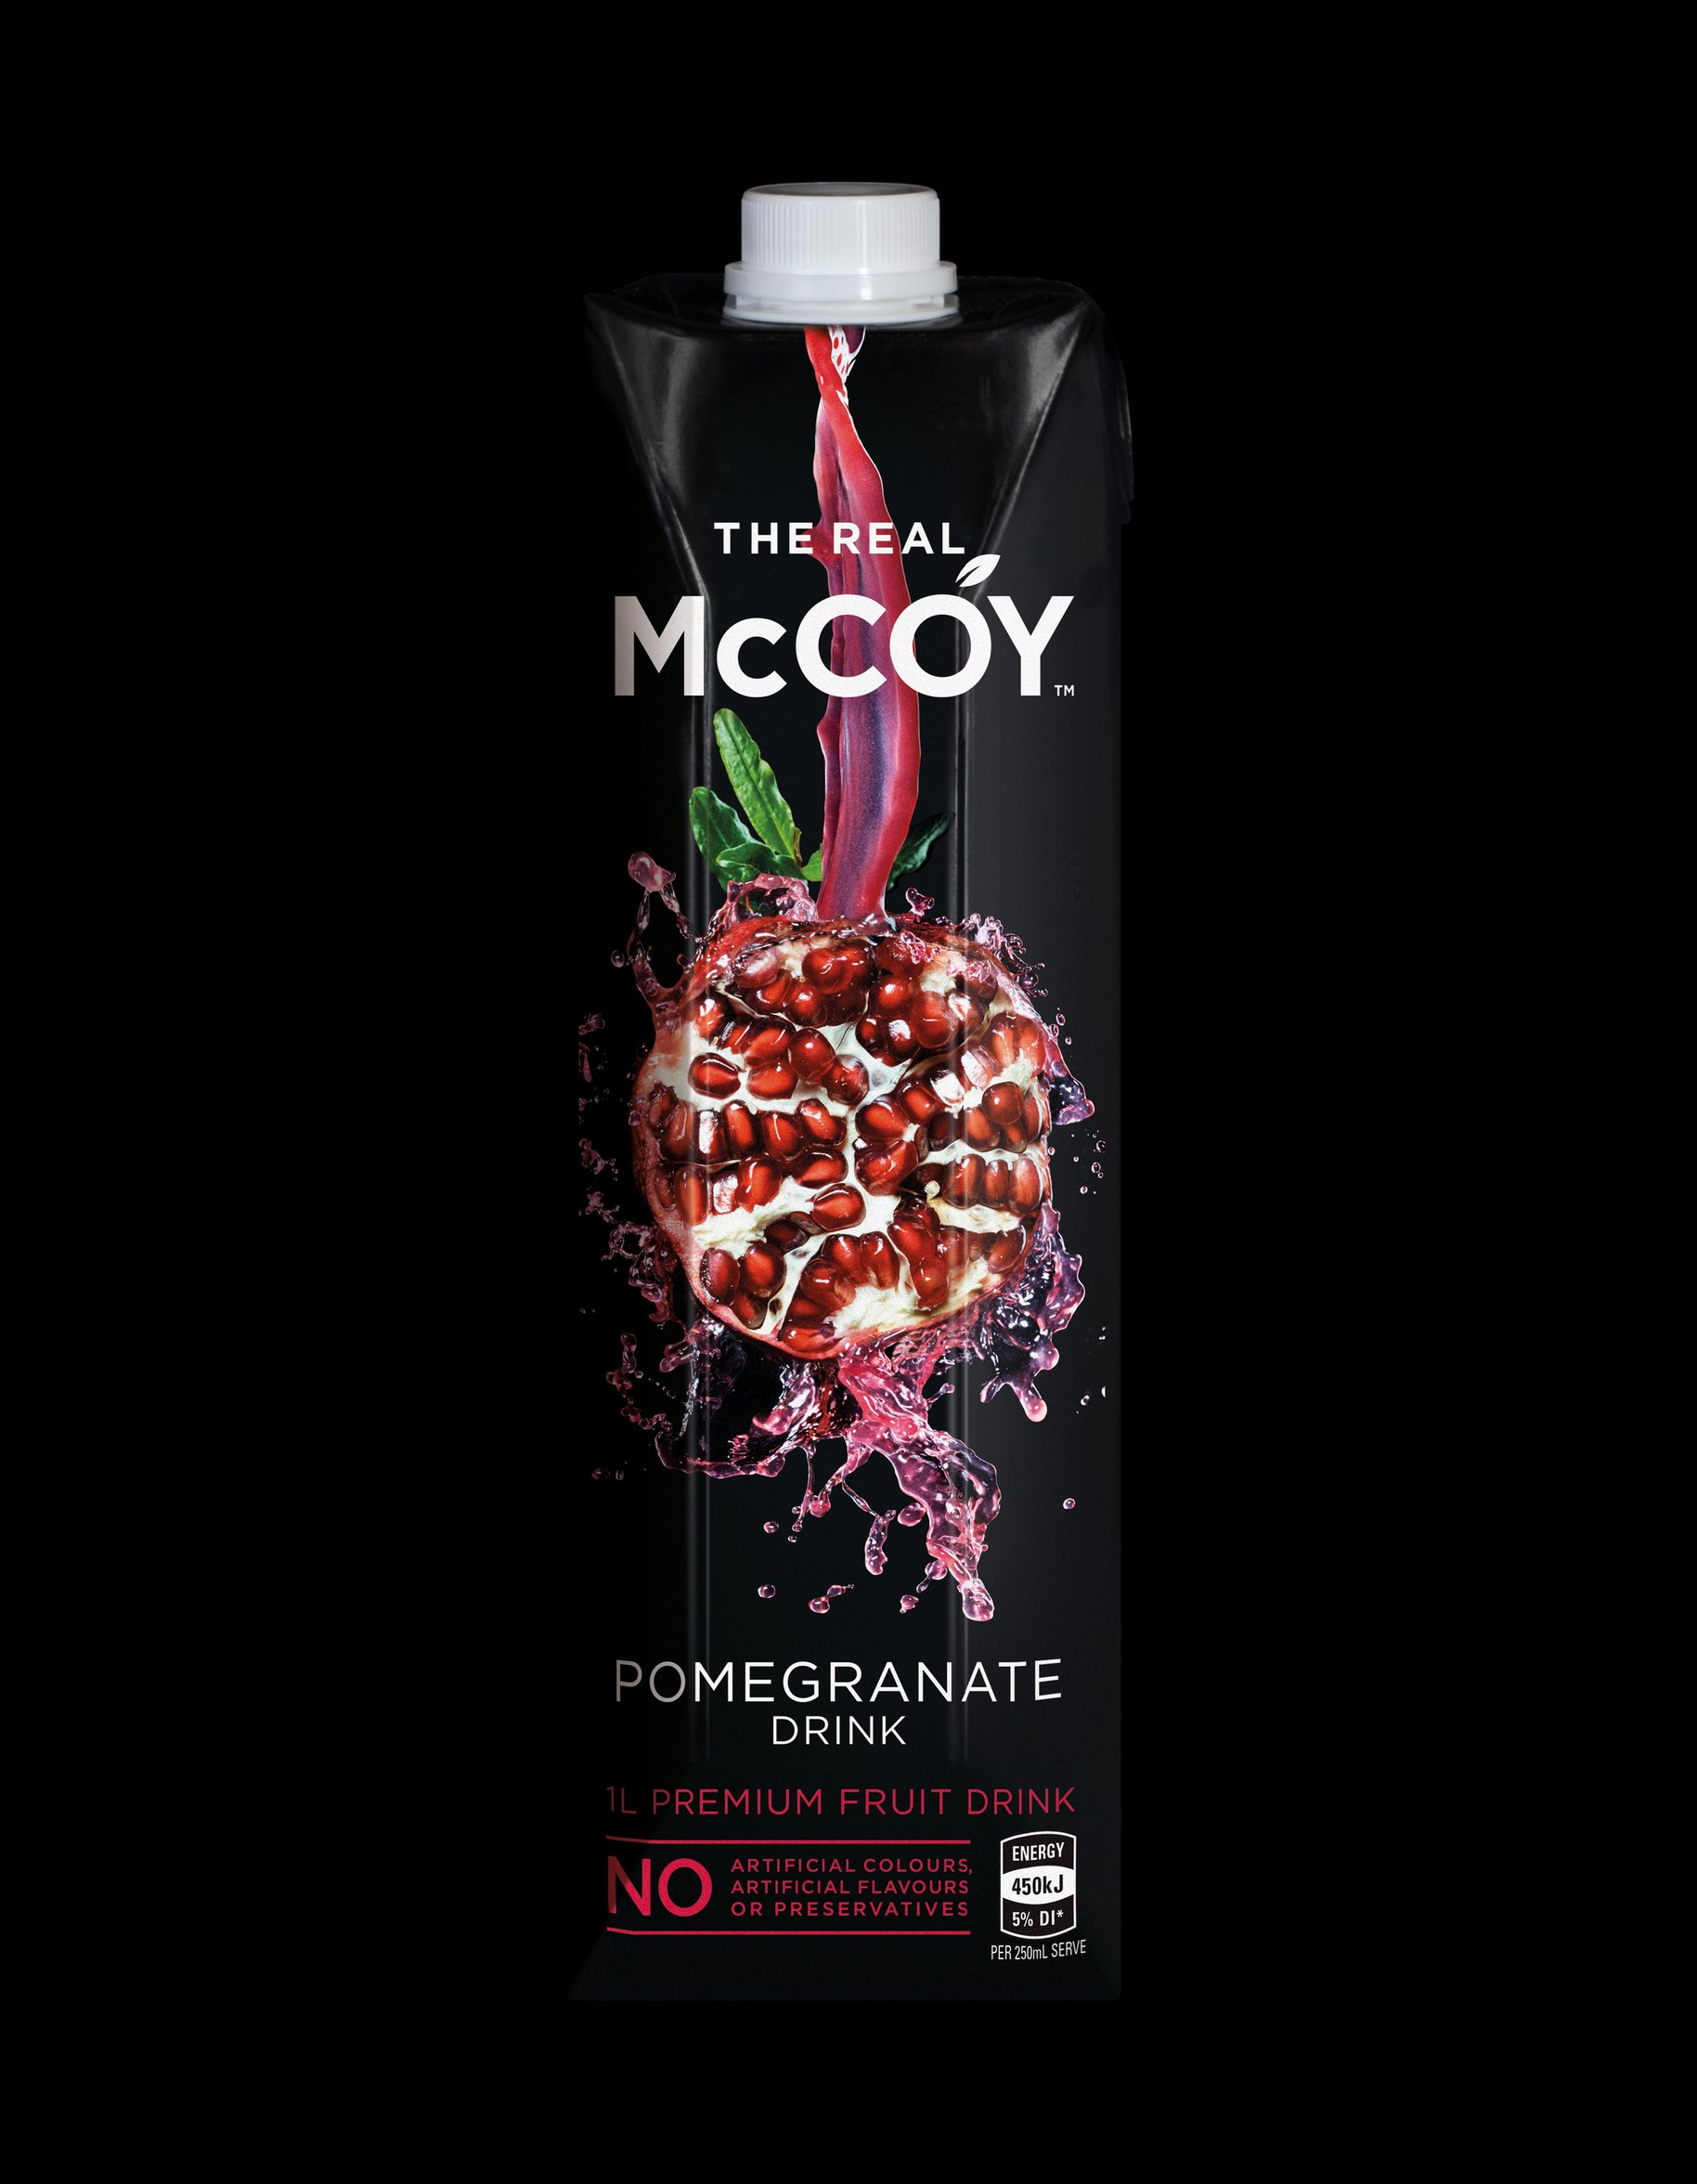 McCoy 1L tetra pomegranate juice packaging